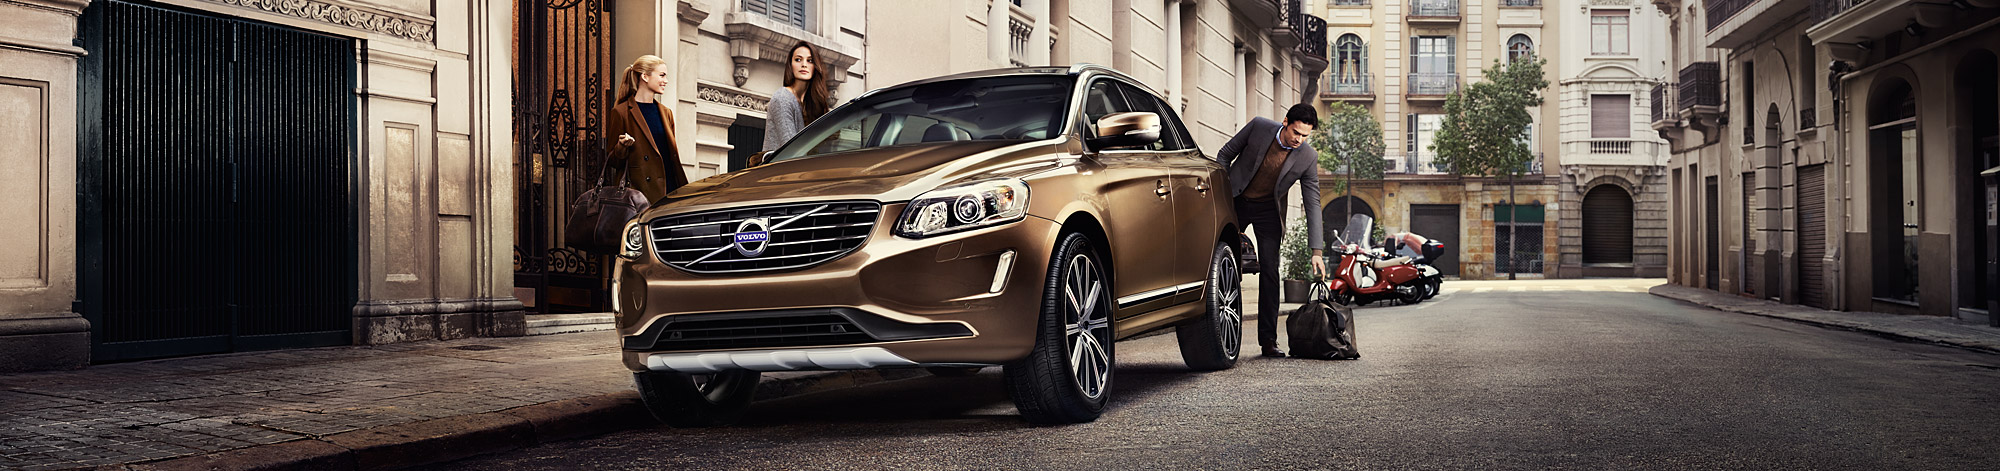 Benefits of buying a Volvo with Autovillage